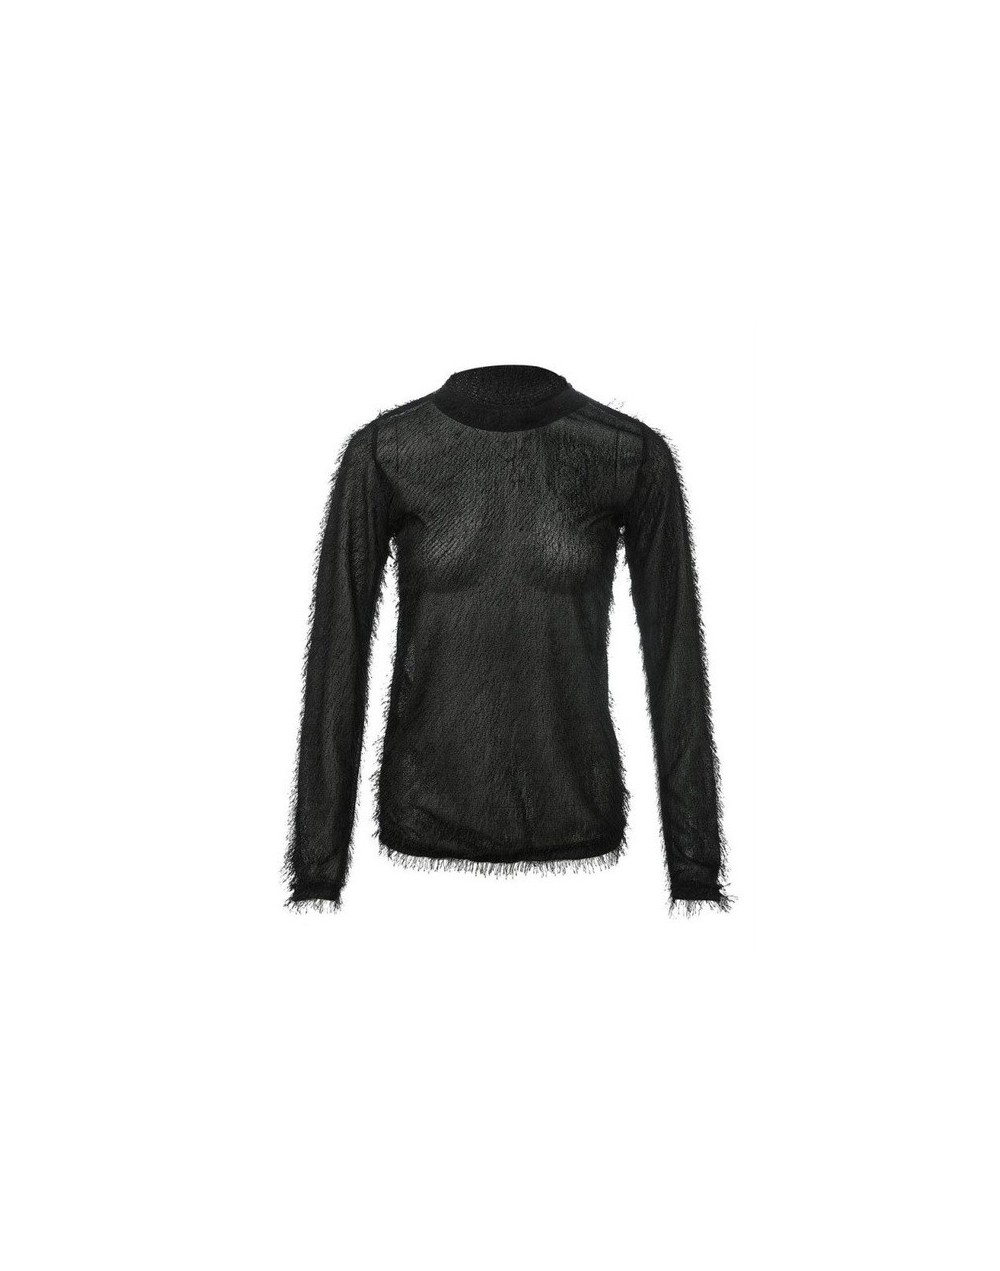 Women Casual Plush Long Sleeve O-neck Tops Spring Autumn Solid Color Sweater Black/White Shirt Loose Pullover Sweaters - Bla...